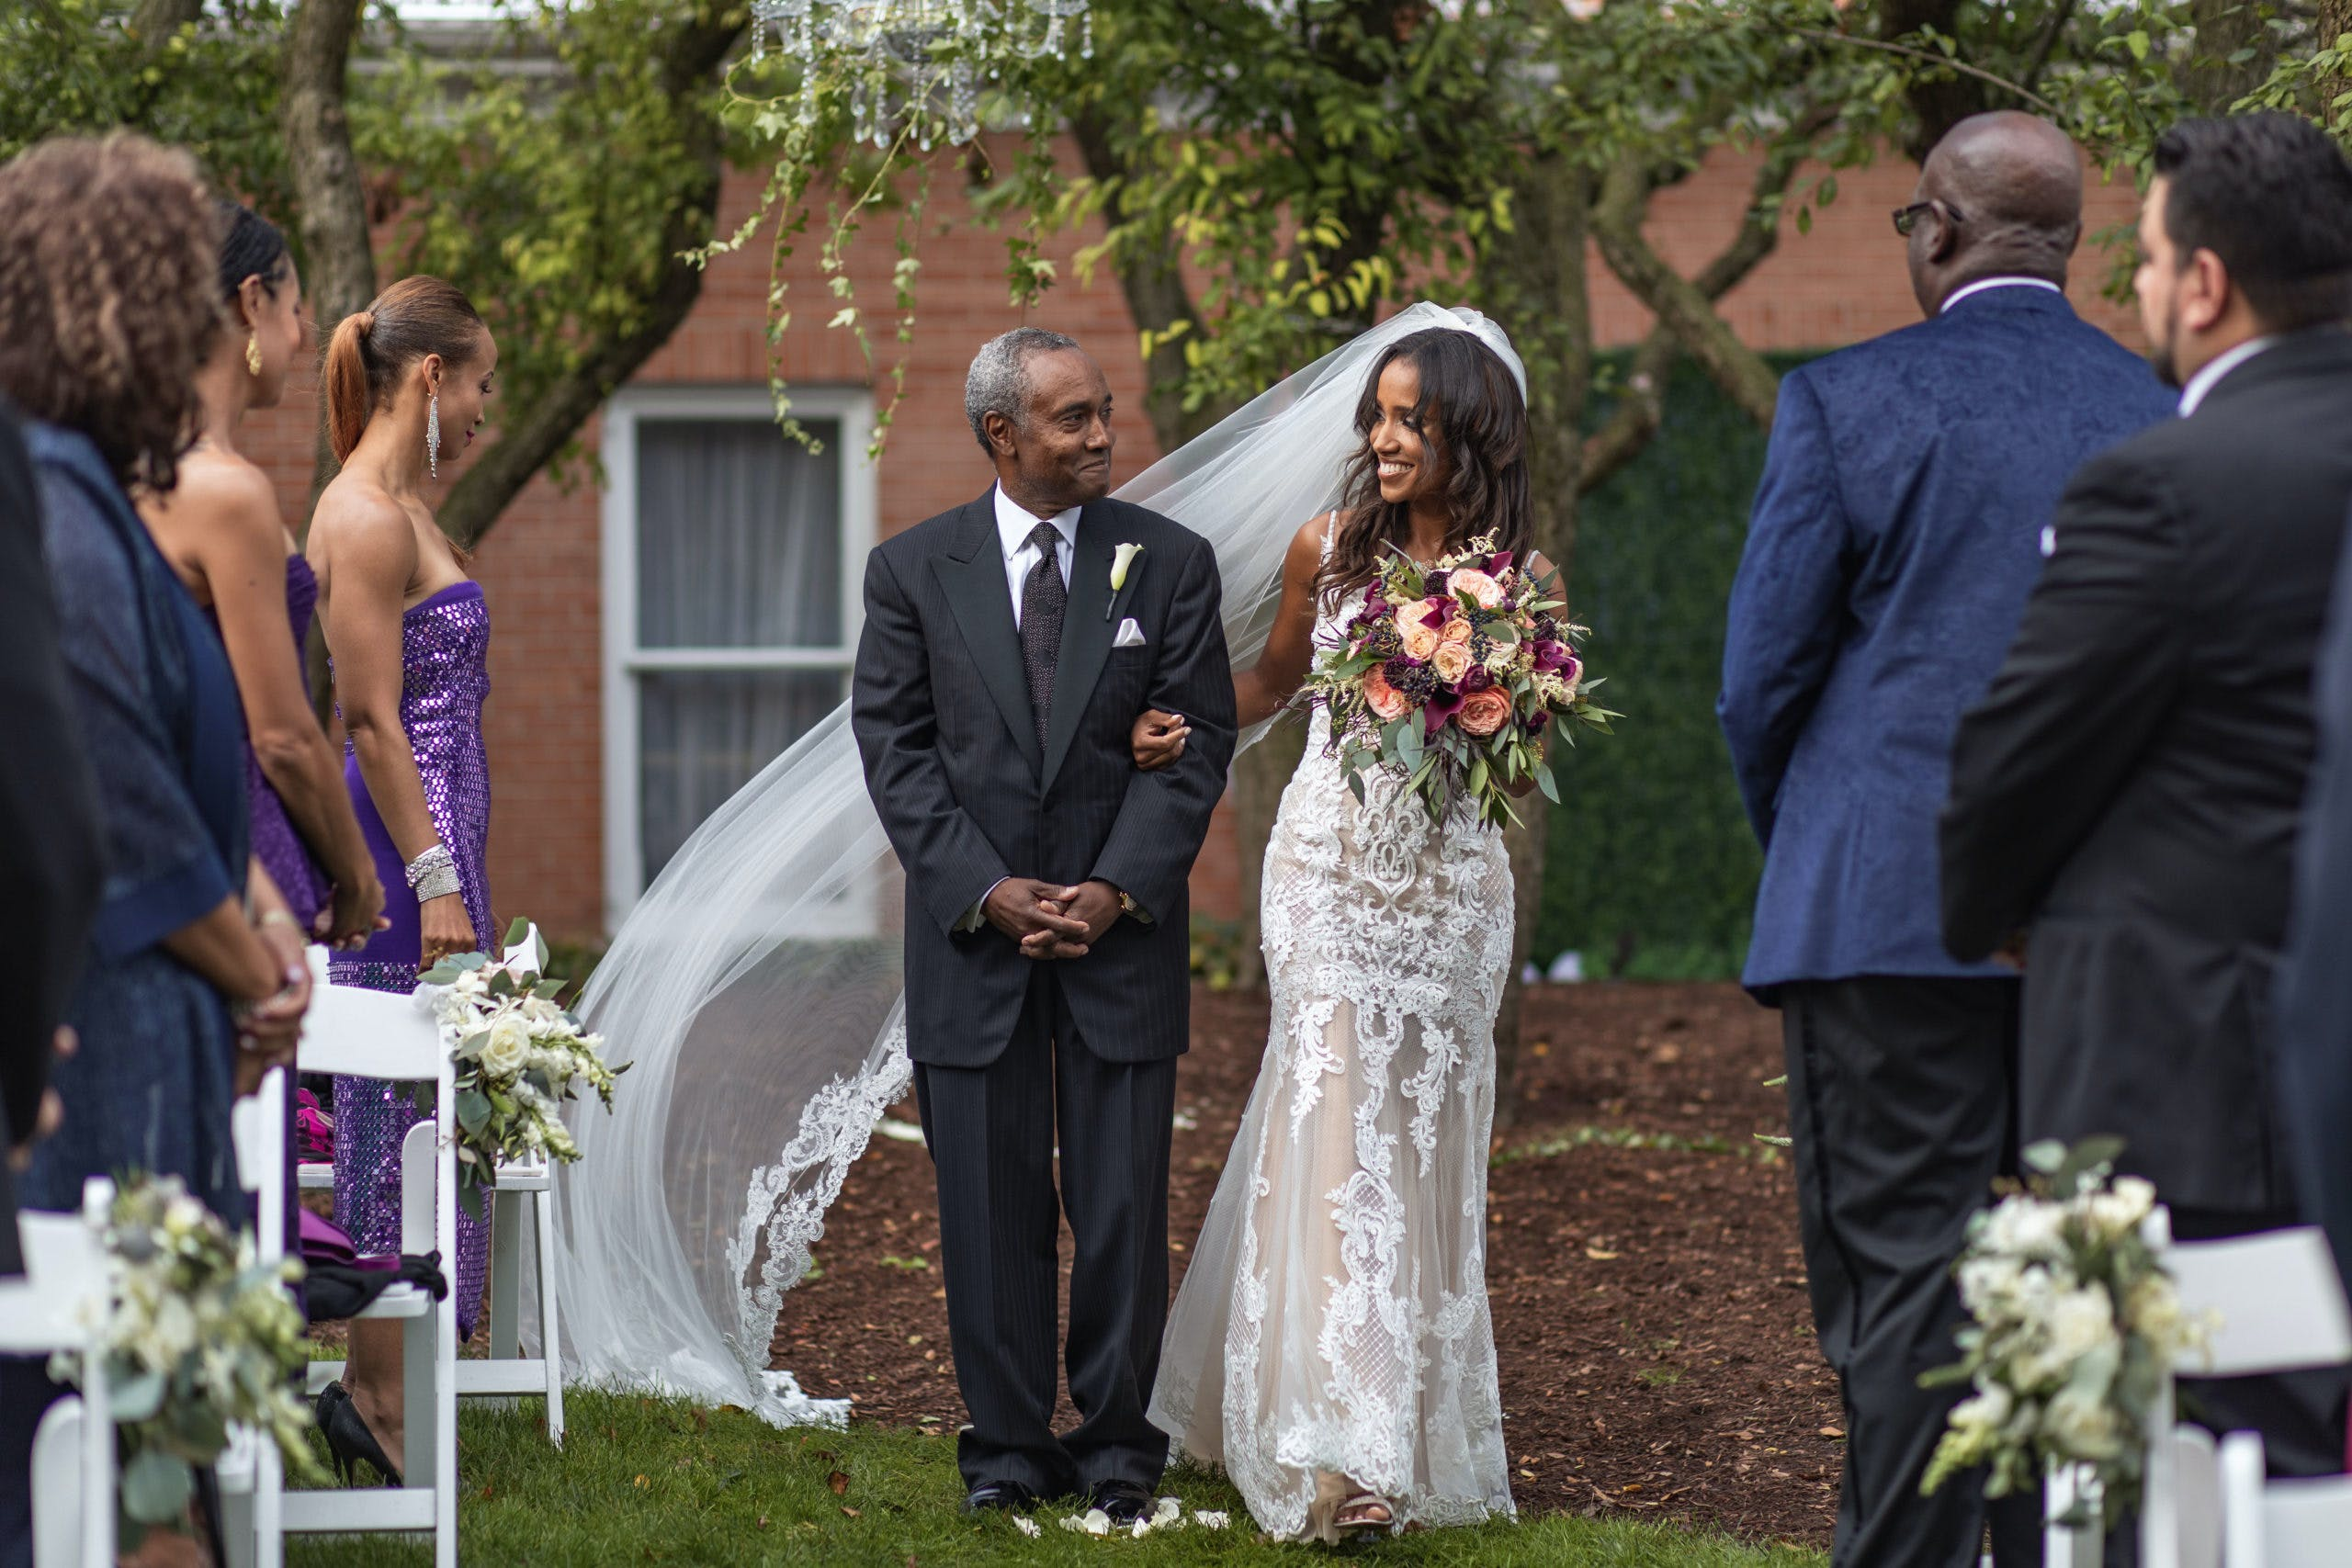 Dad and bride walking down aisle   PartySlate